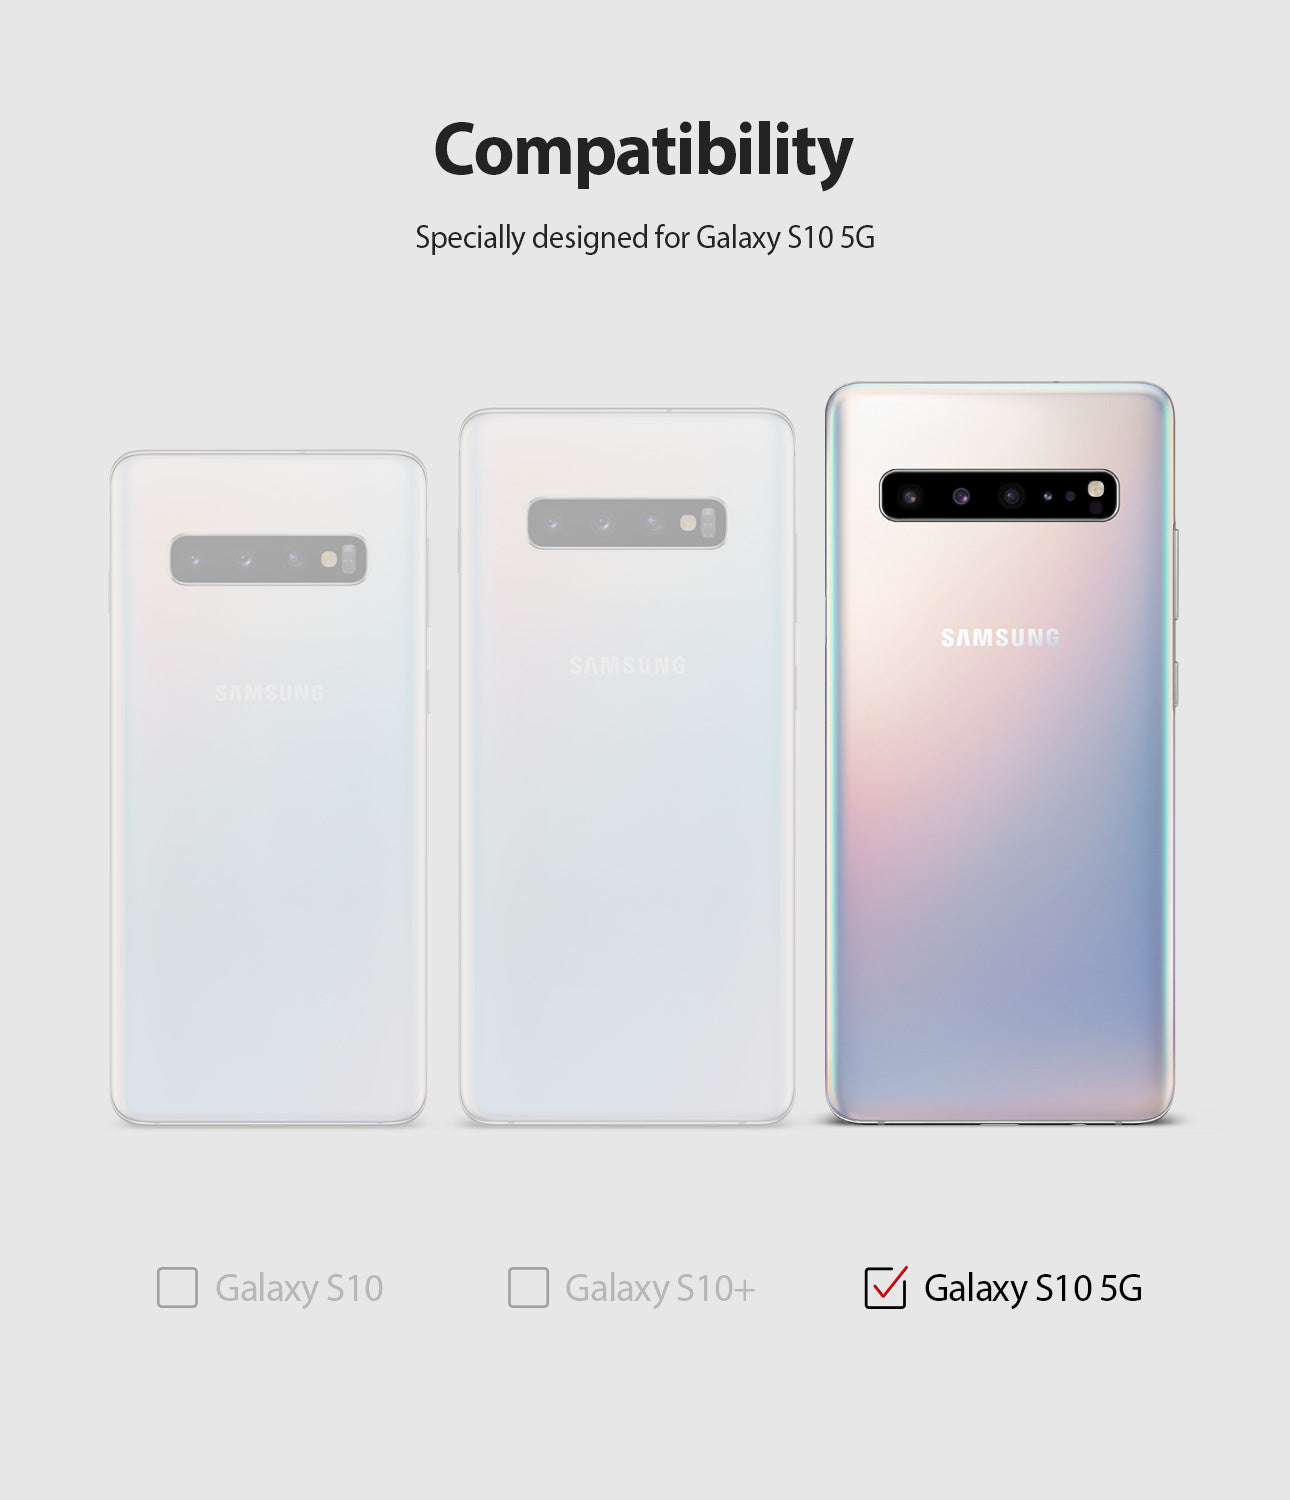 only compatible with galaxy s10 5G